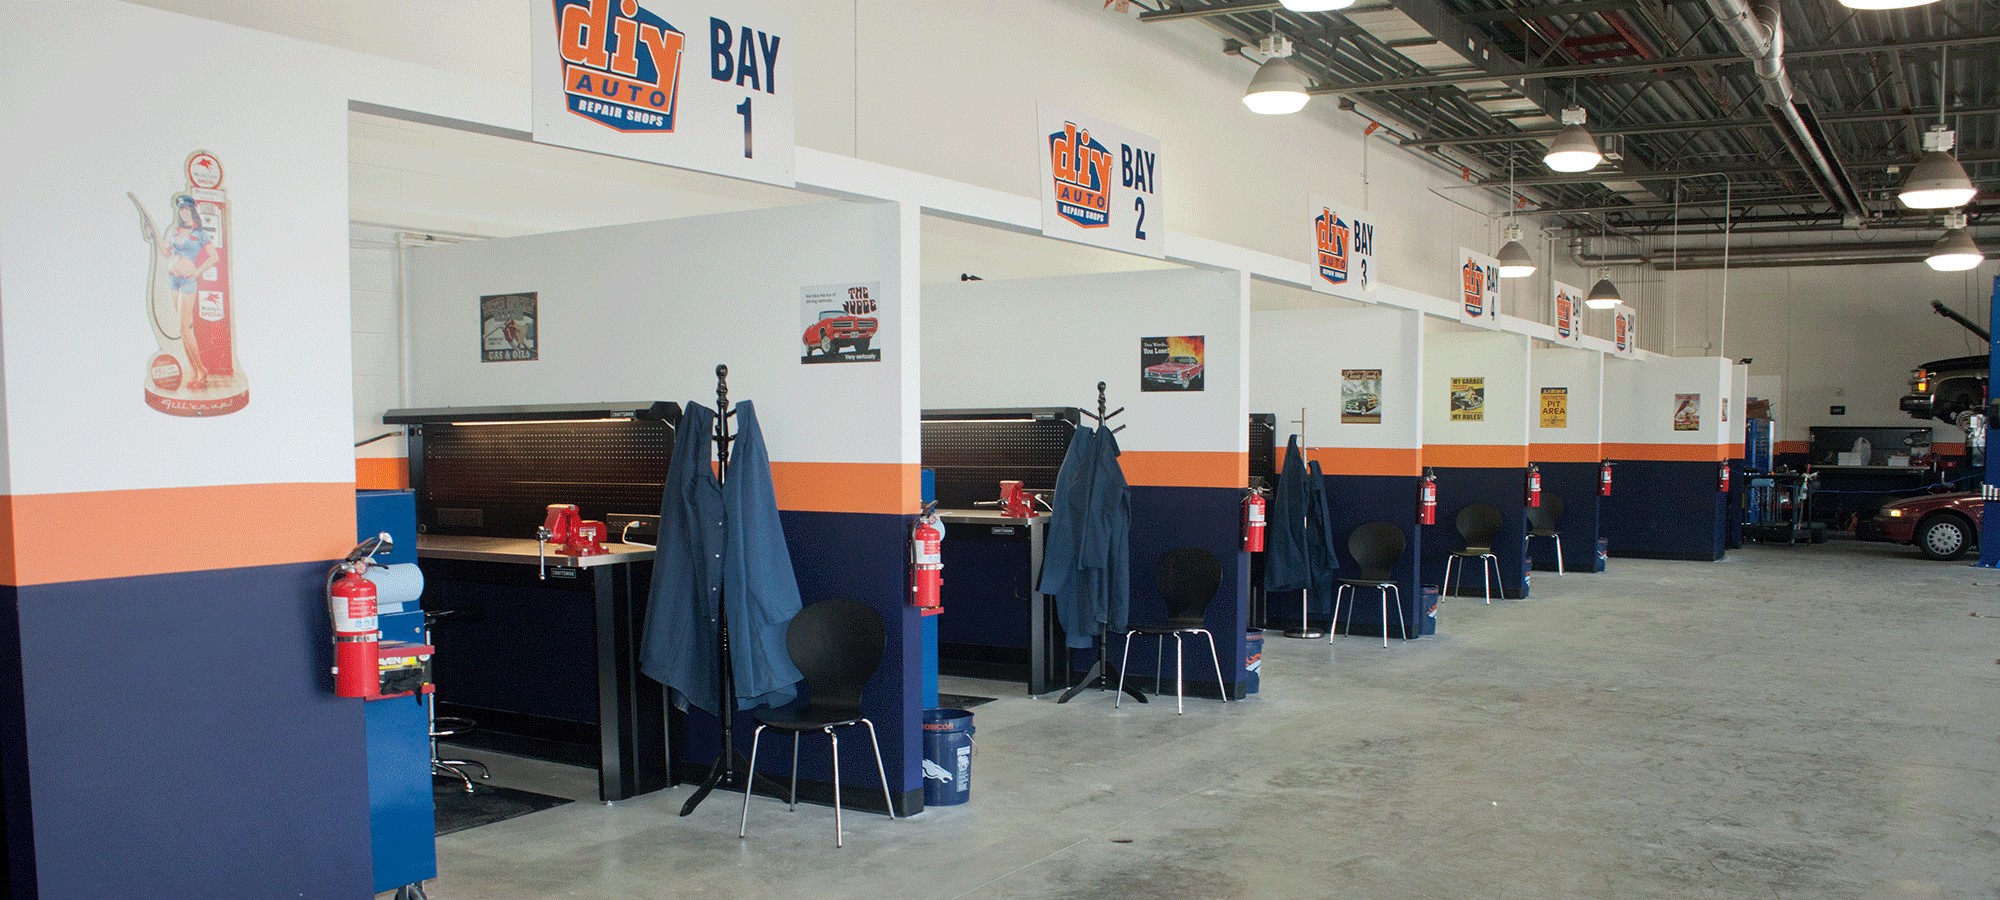 Best ideas about DIY Auto Repair Shop Near Me . Save or Pin DIY Auto Repair Shops Equipped Self Service Garage Bays Now.